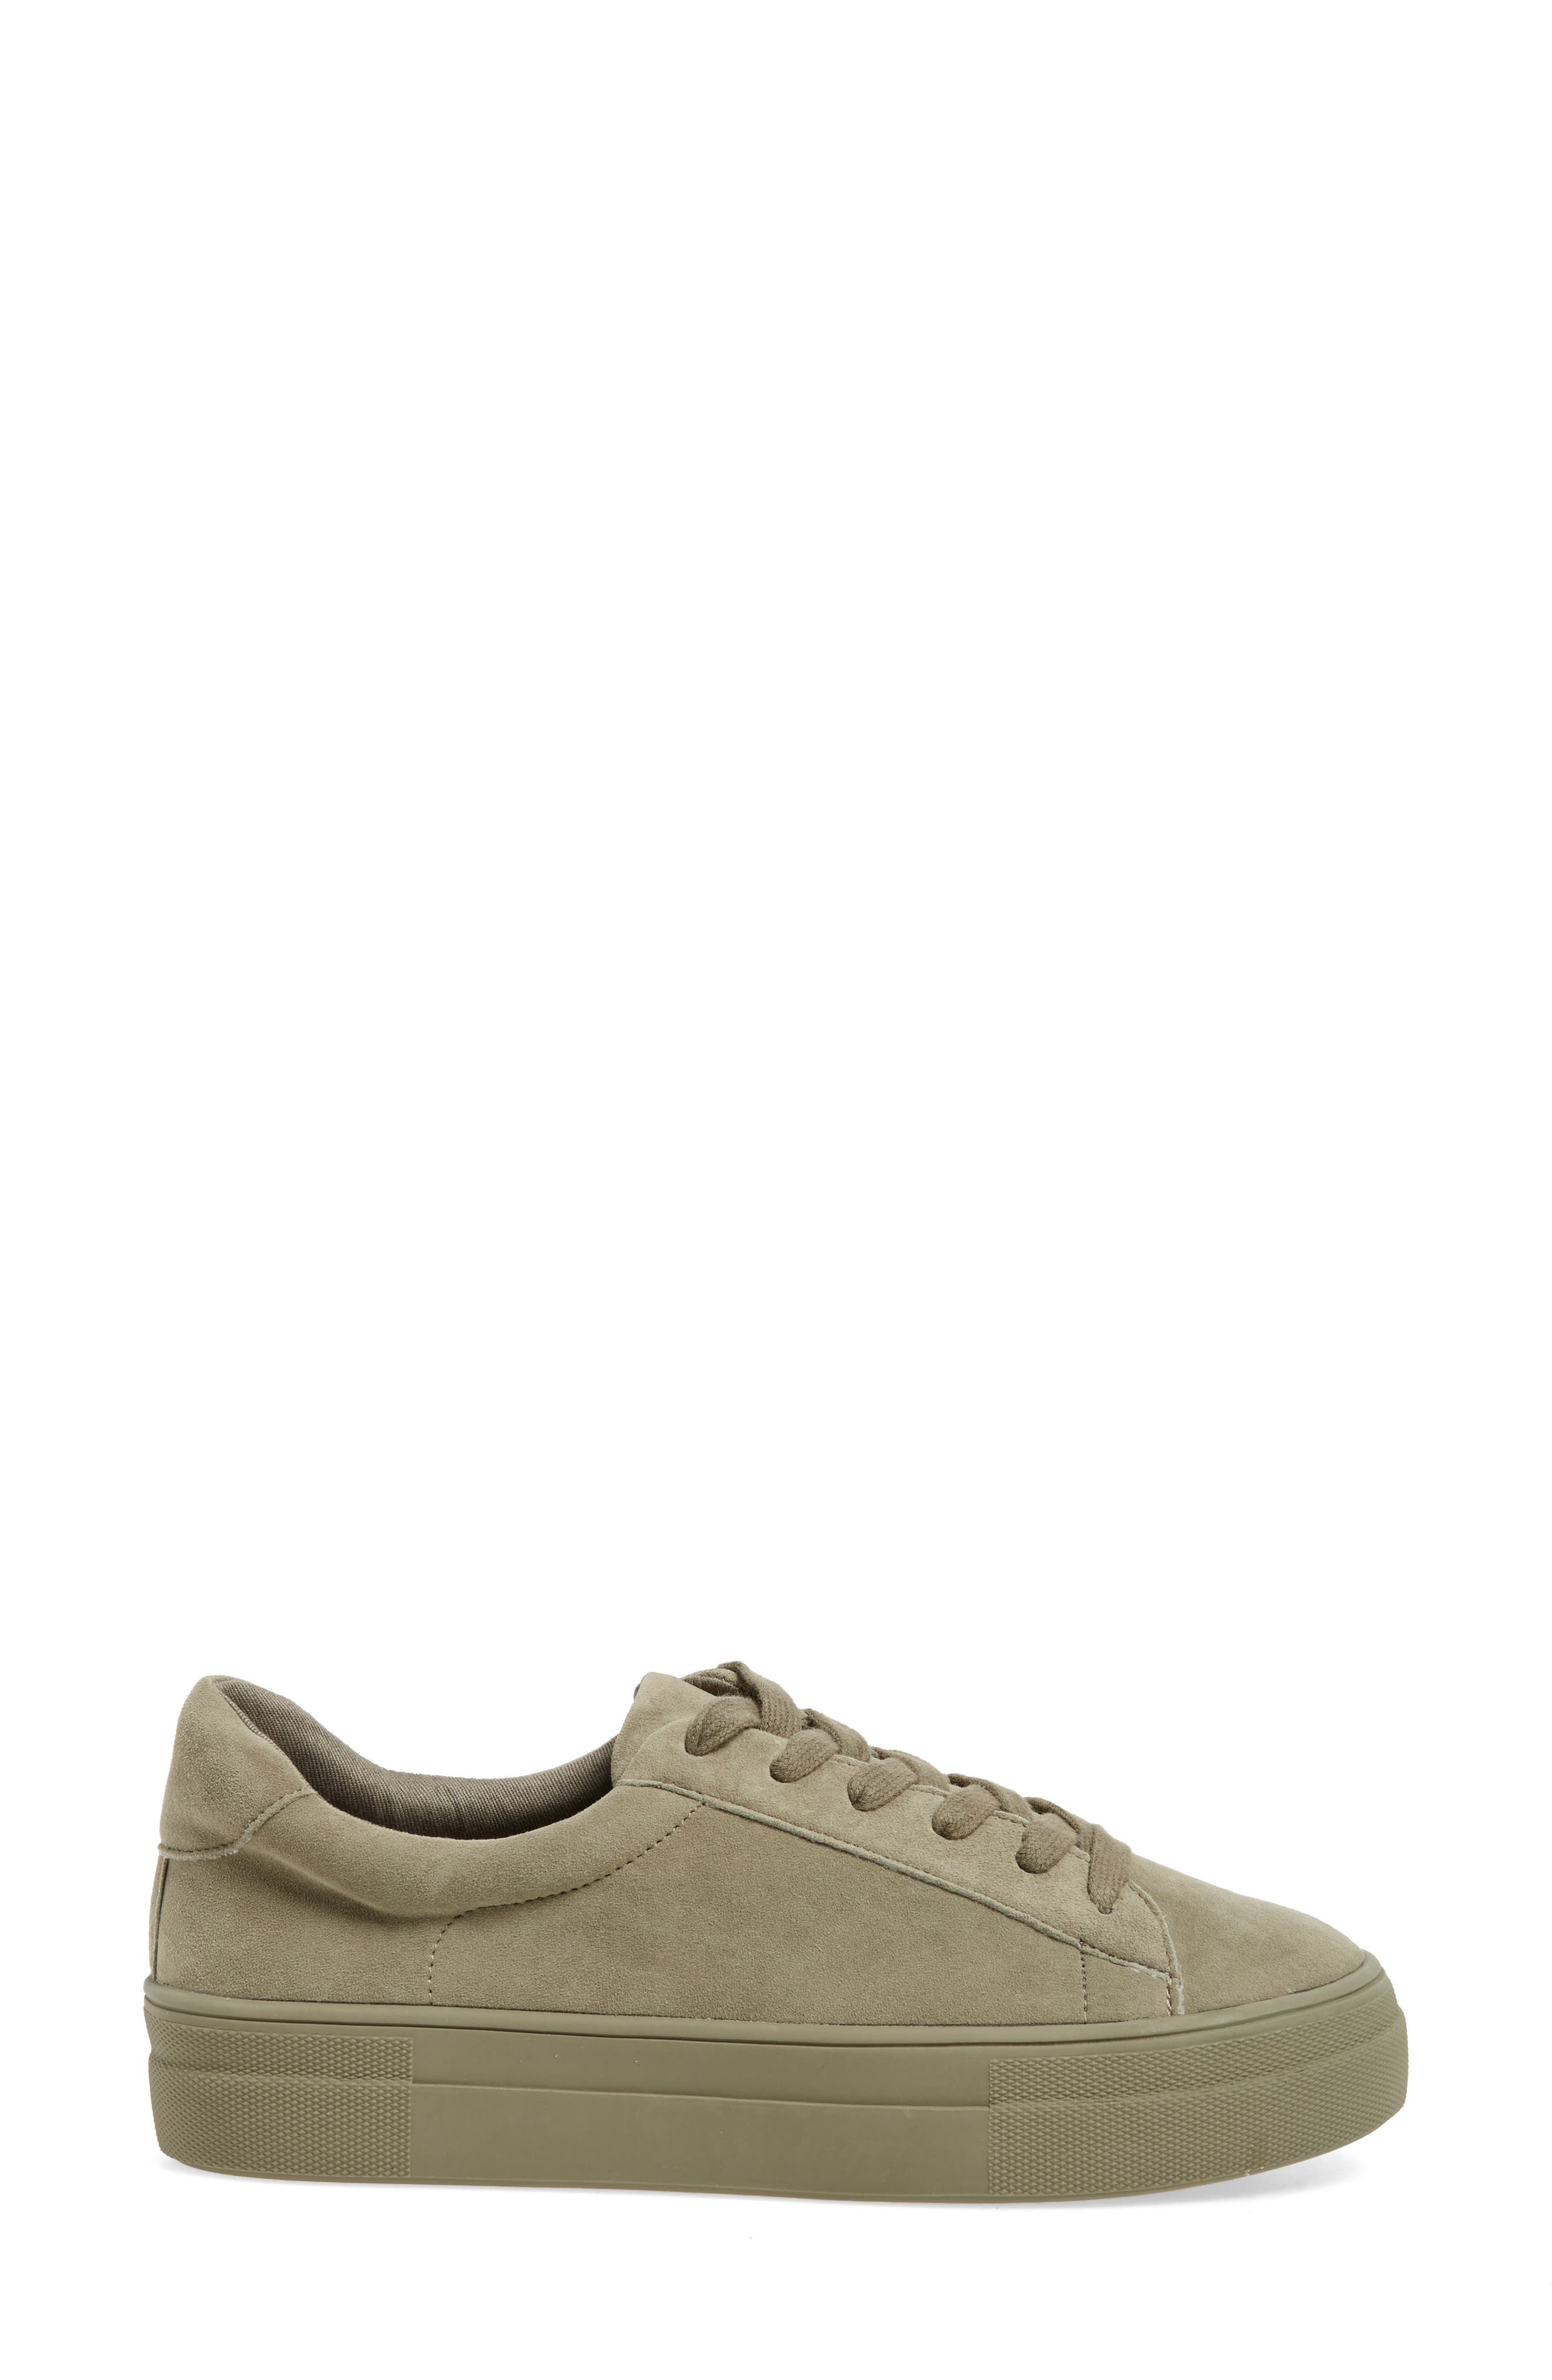 Gisela Low Top Sneaker,                             Alternate thumbnail 3, color,                             Olive Suede